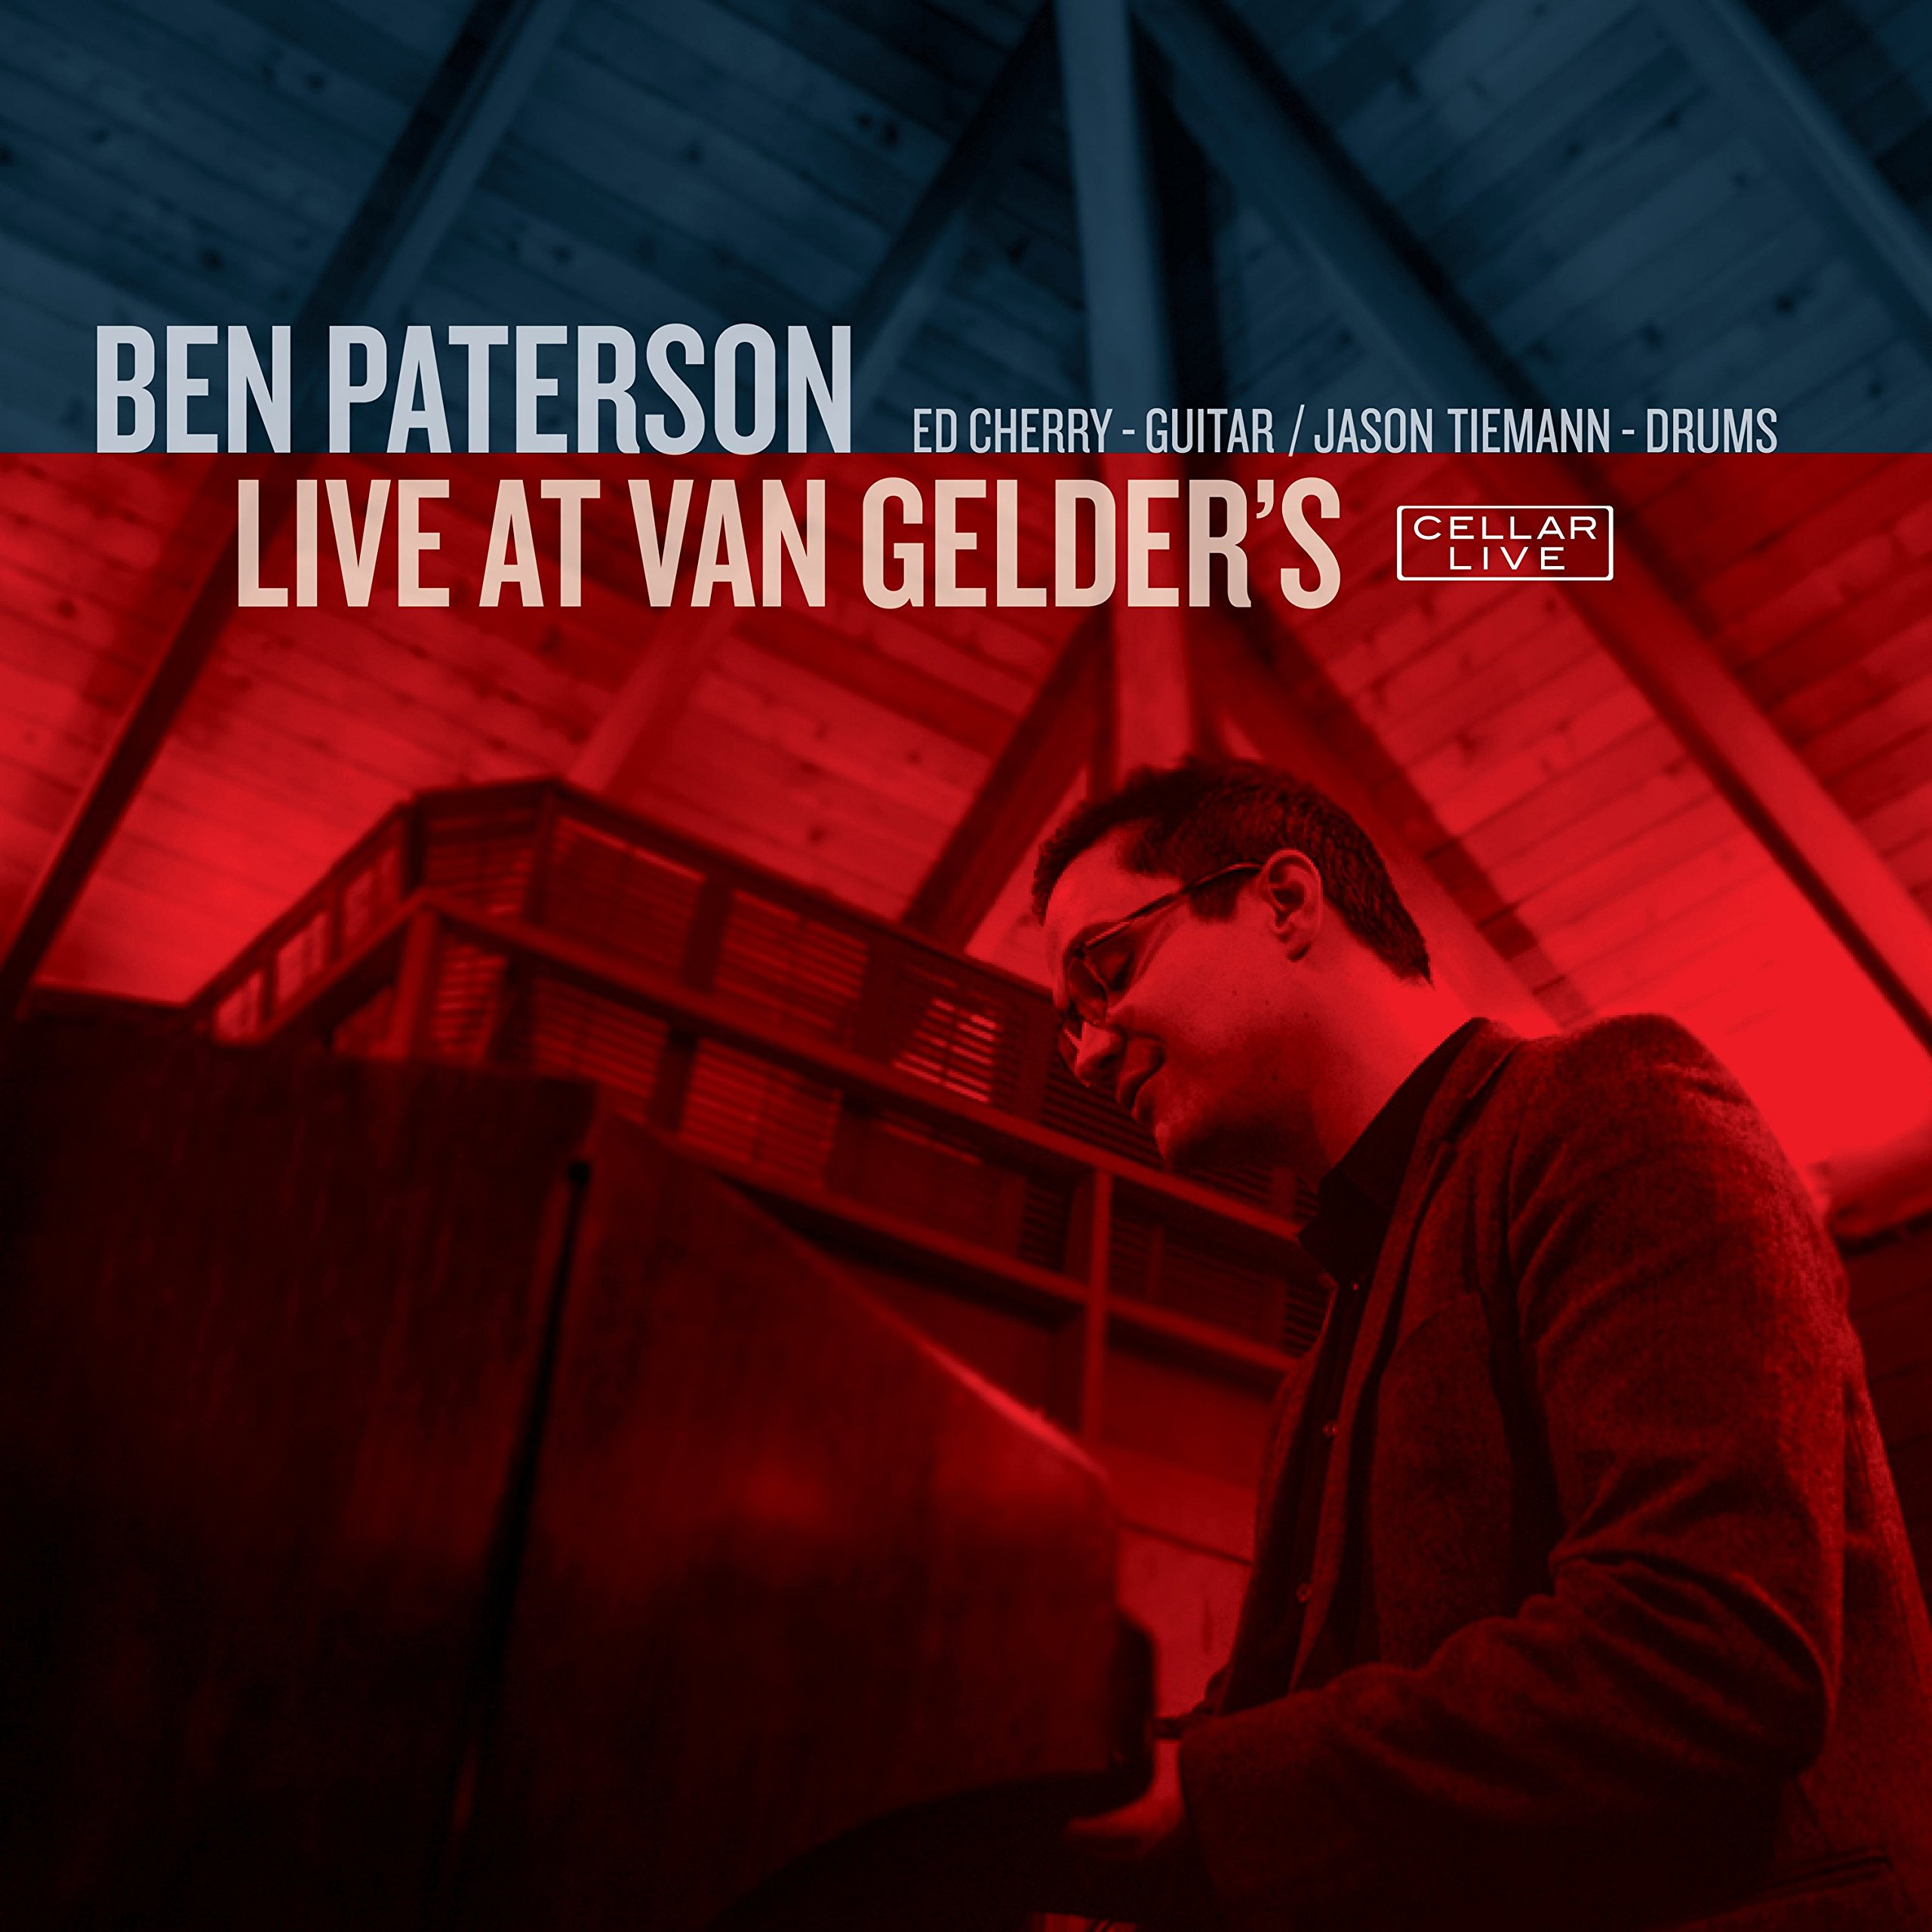 Live At Van Gelder's by Cellar Live